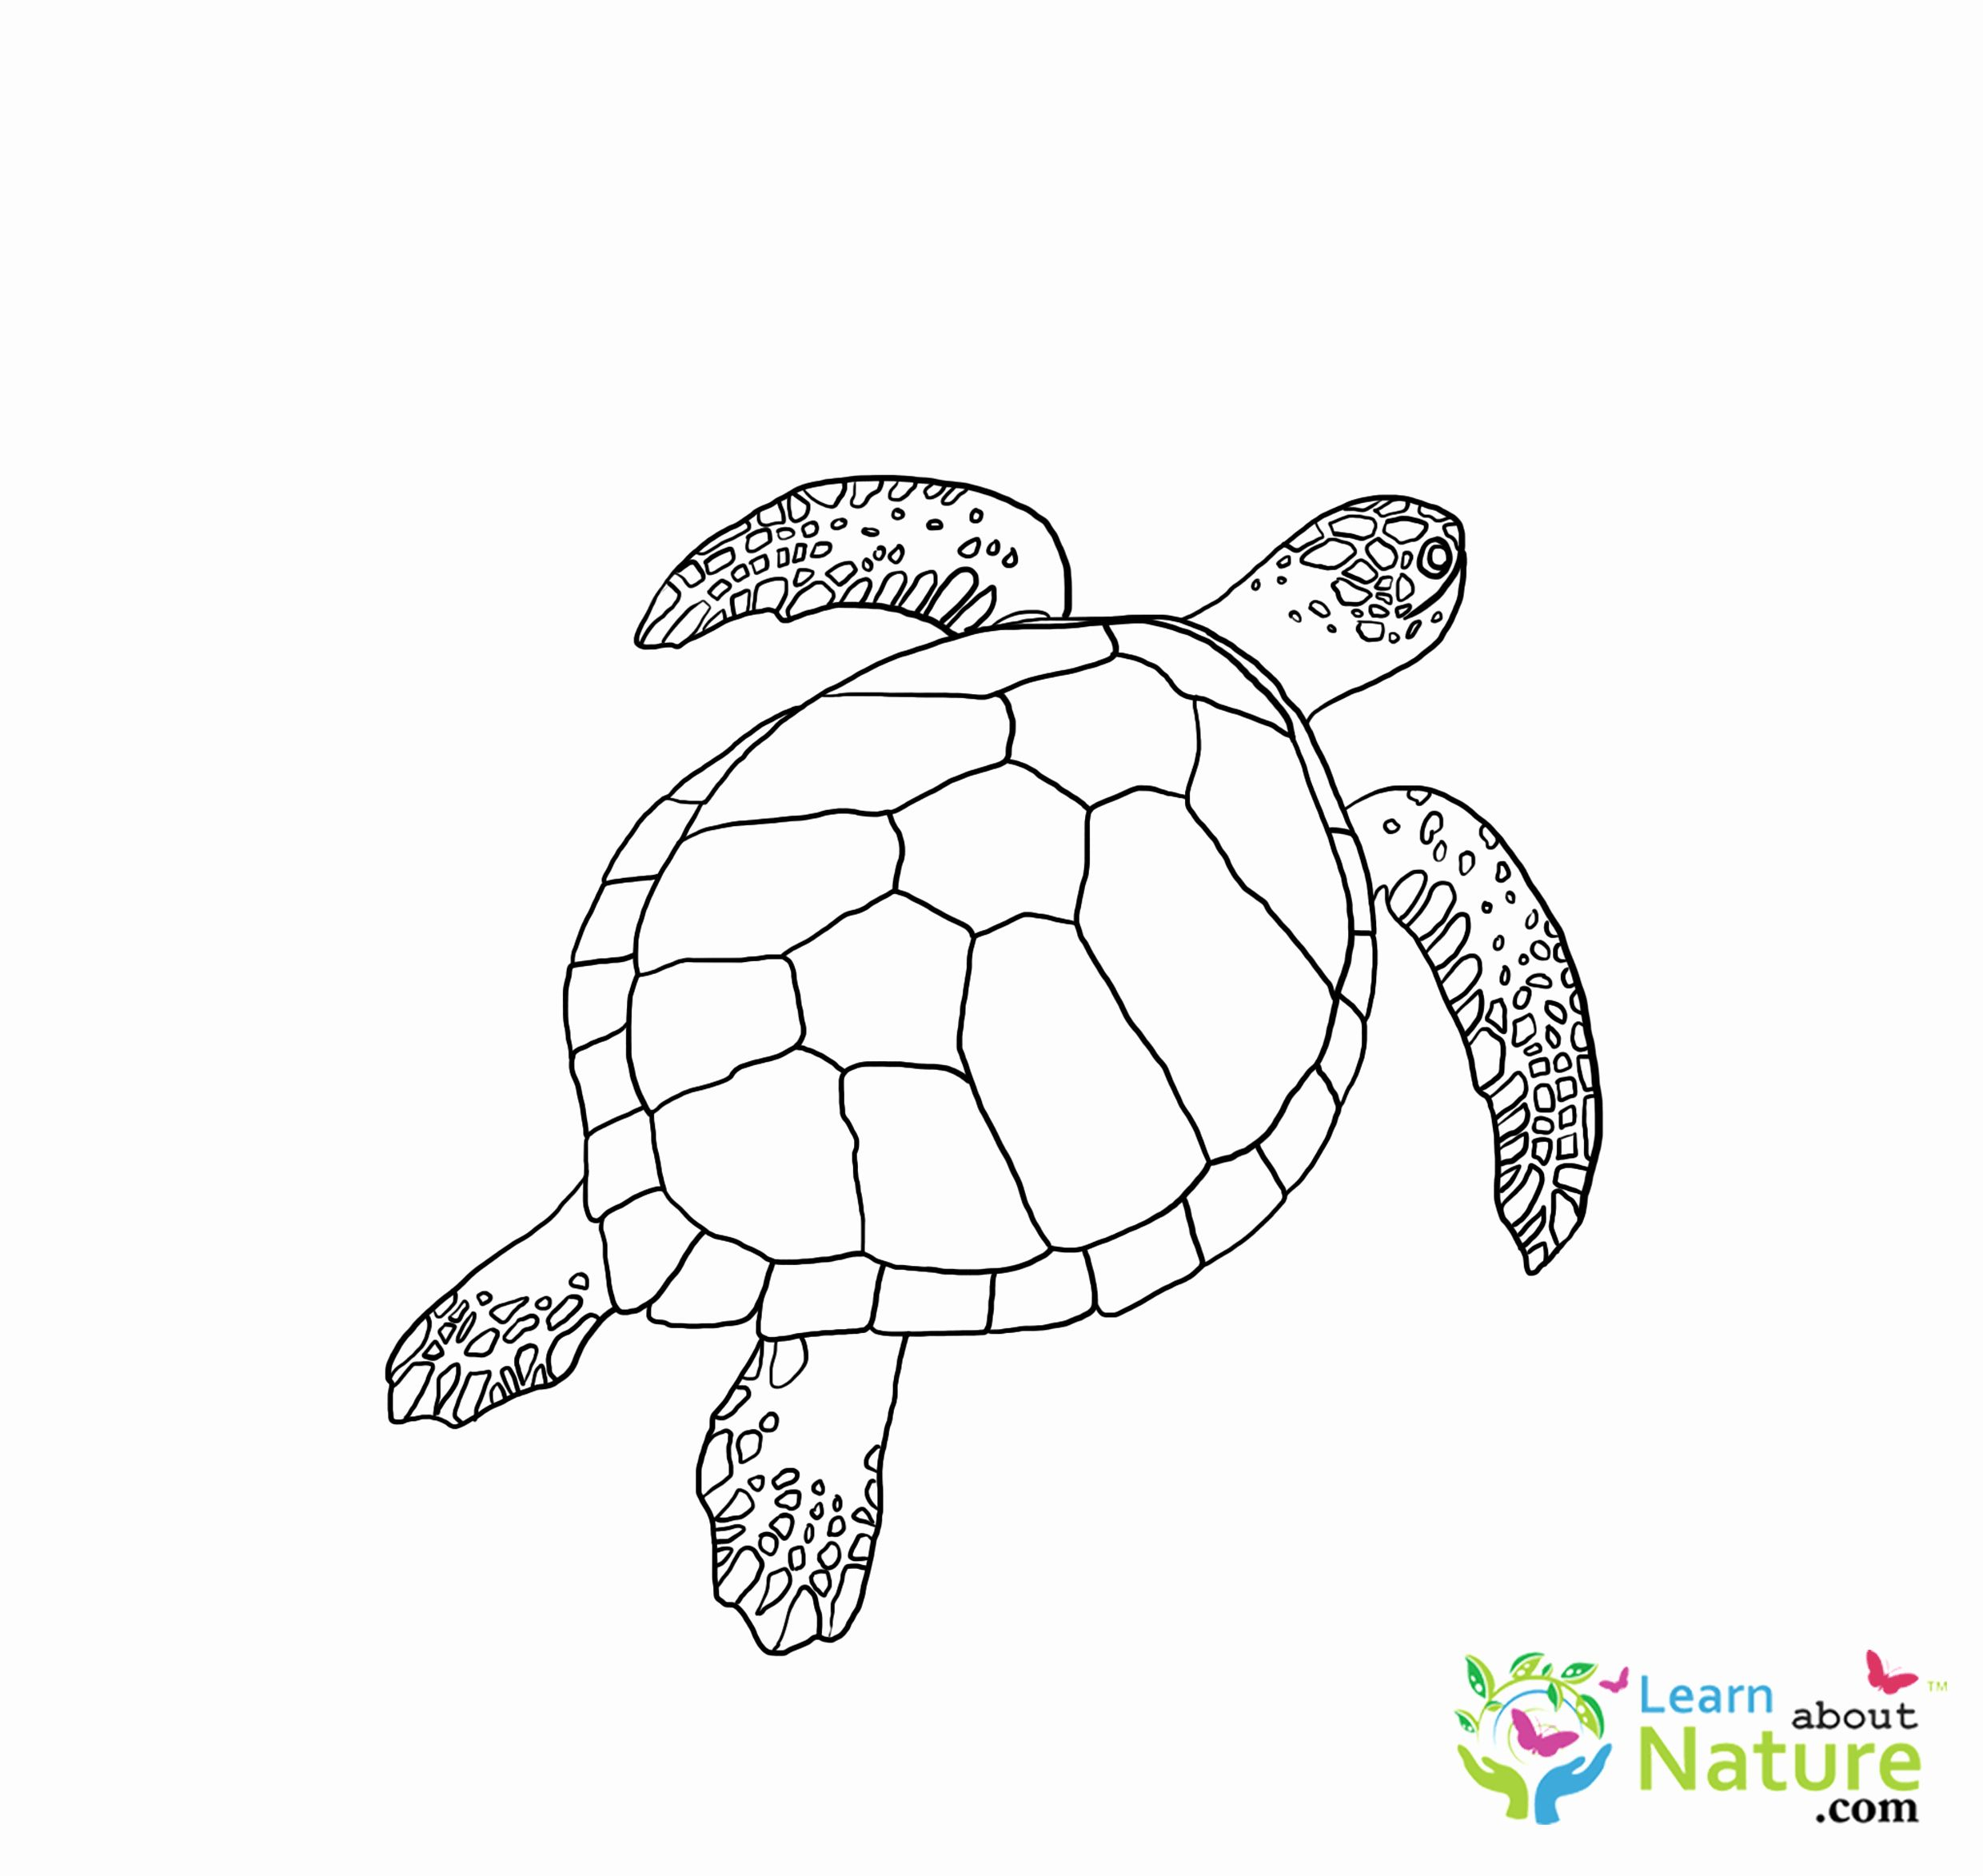 Pond Animals Coloring Pages Unique Turtles Coloring Page